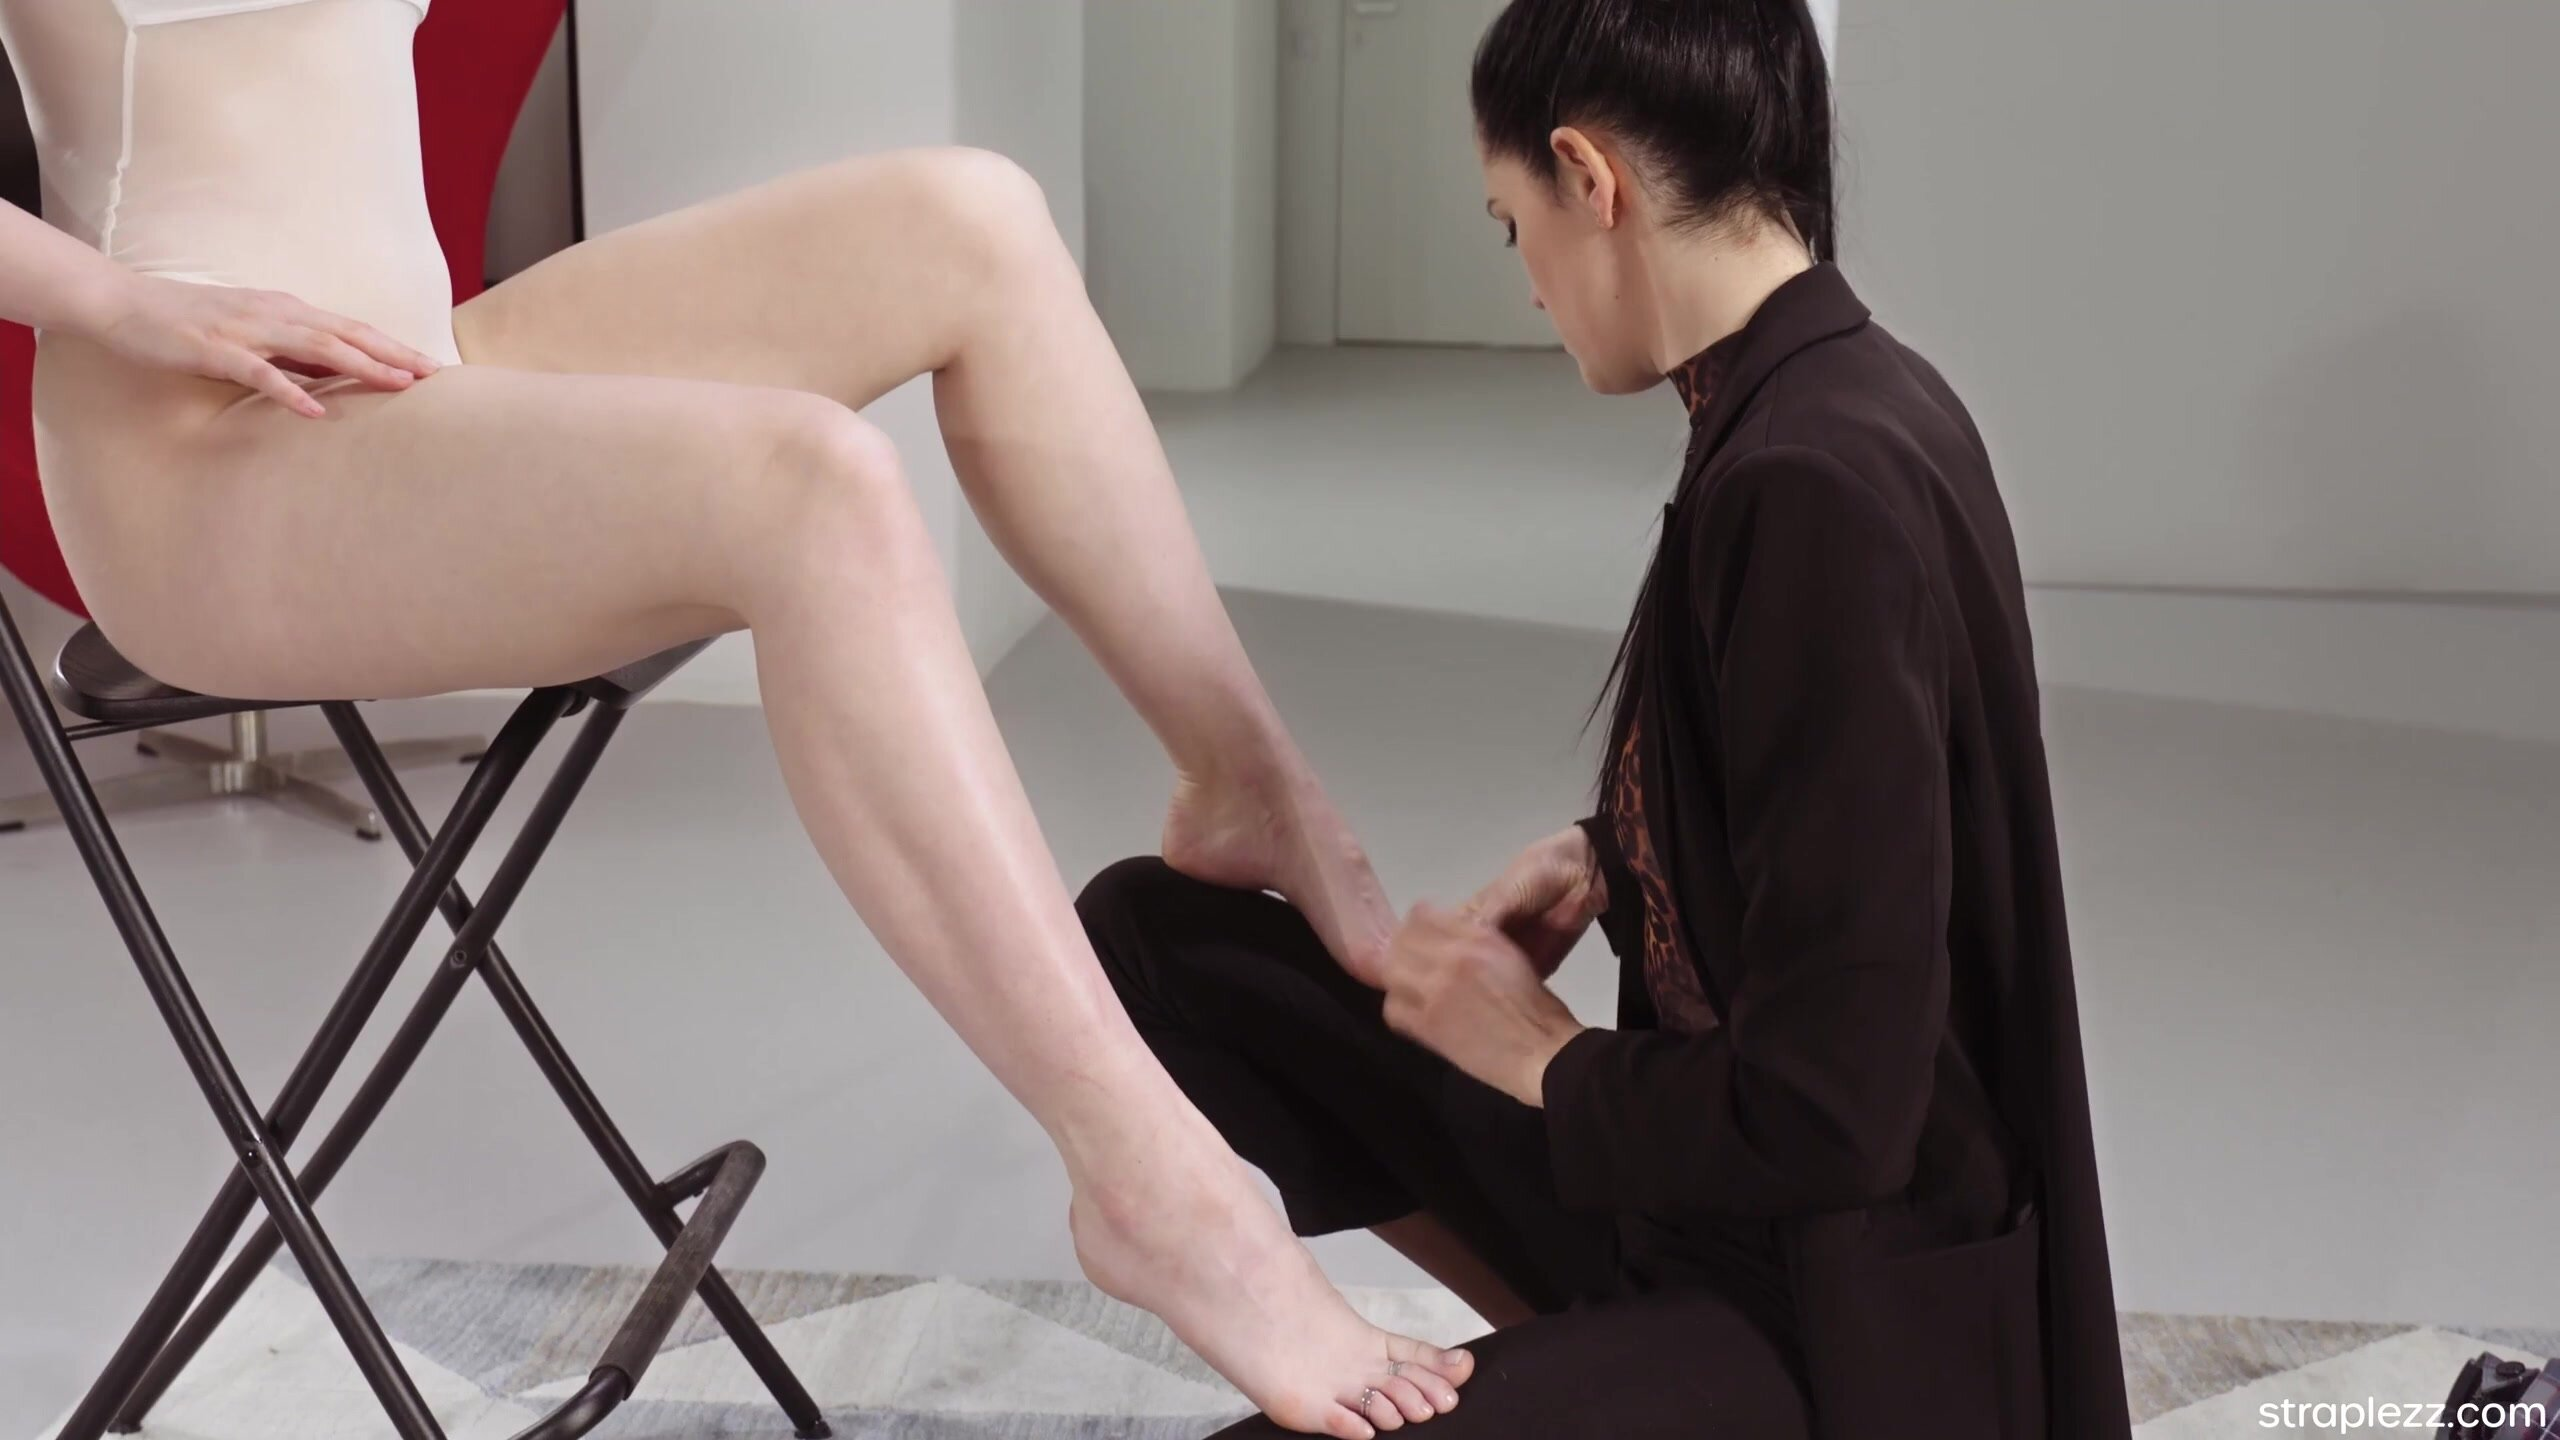 Lil Karla & Mia - Successful Foot Fetish Relationships